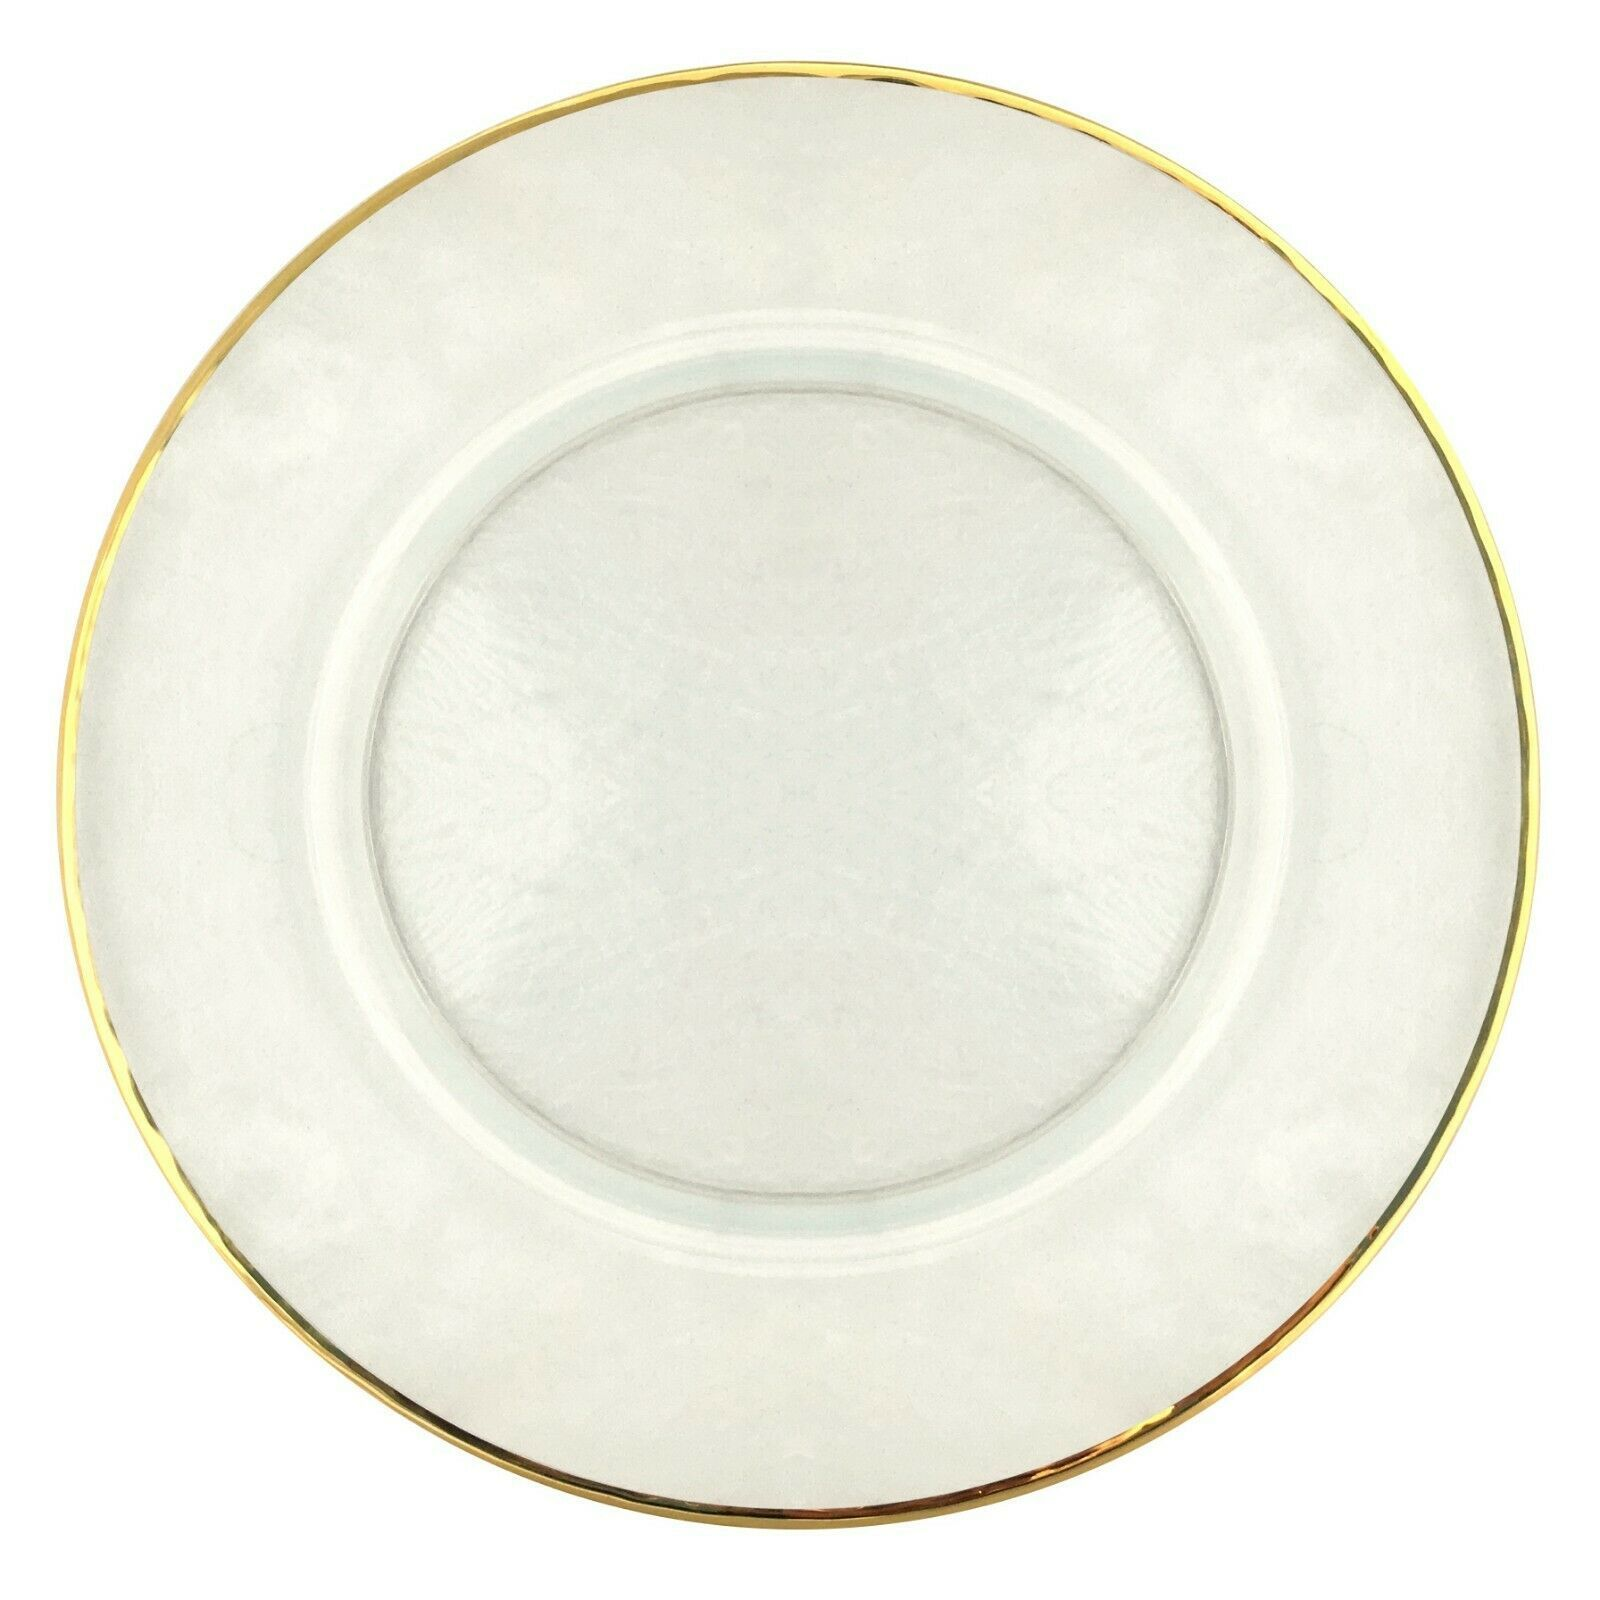 Set/12 GILT 24K Gold Rim Hammered Glass Charger Plate